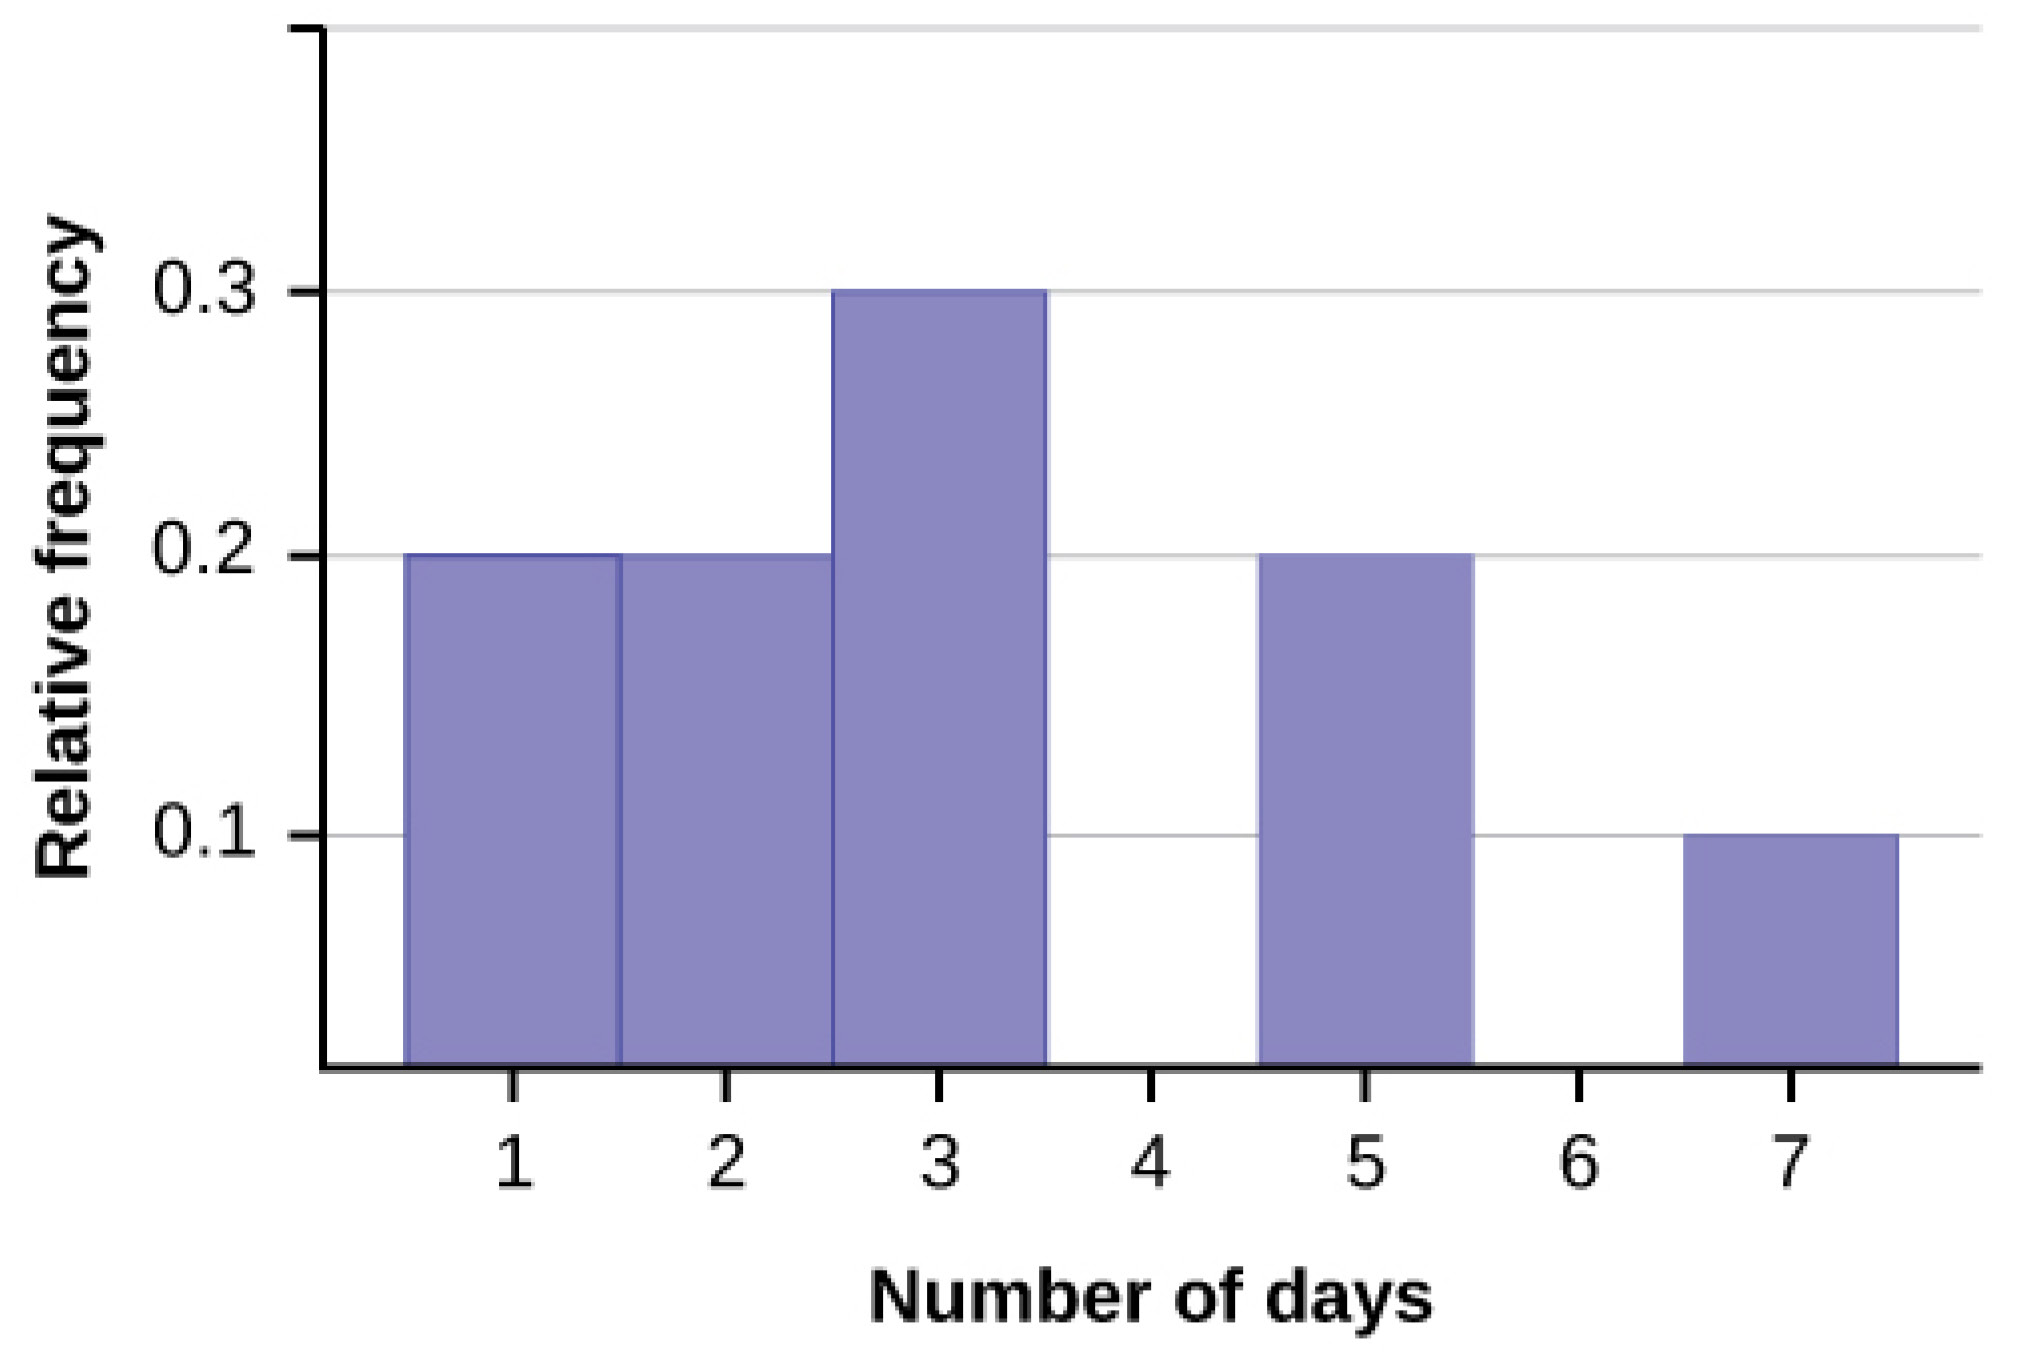 This shows a relative frequency histogram. The horizontal axis shows the number of days using whole numbers from 1 to 7. The vertical axis shows relative frequency in units of 0.1 from 0.1 to 0.3. The graph shows the following proportions: 0.2 of responses are 1, 0.2 are 2, 0.3 are 3, 0.2 are 5, and 0.1 of responses are 7.